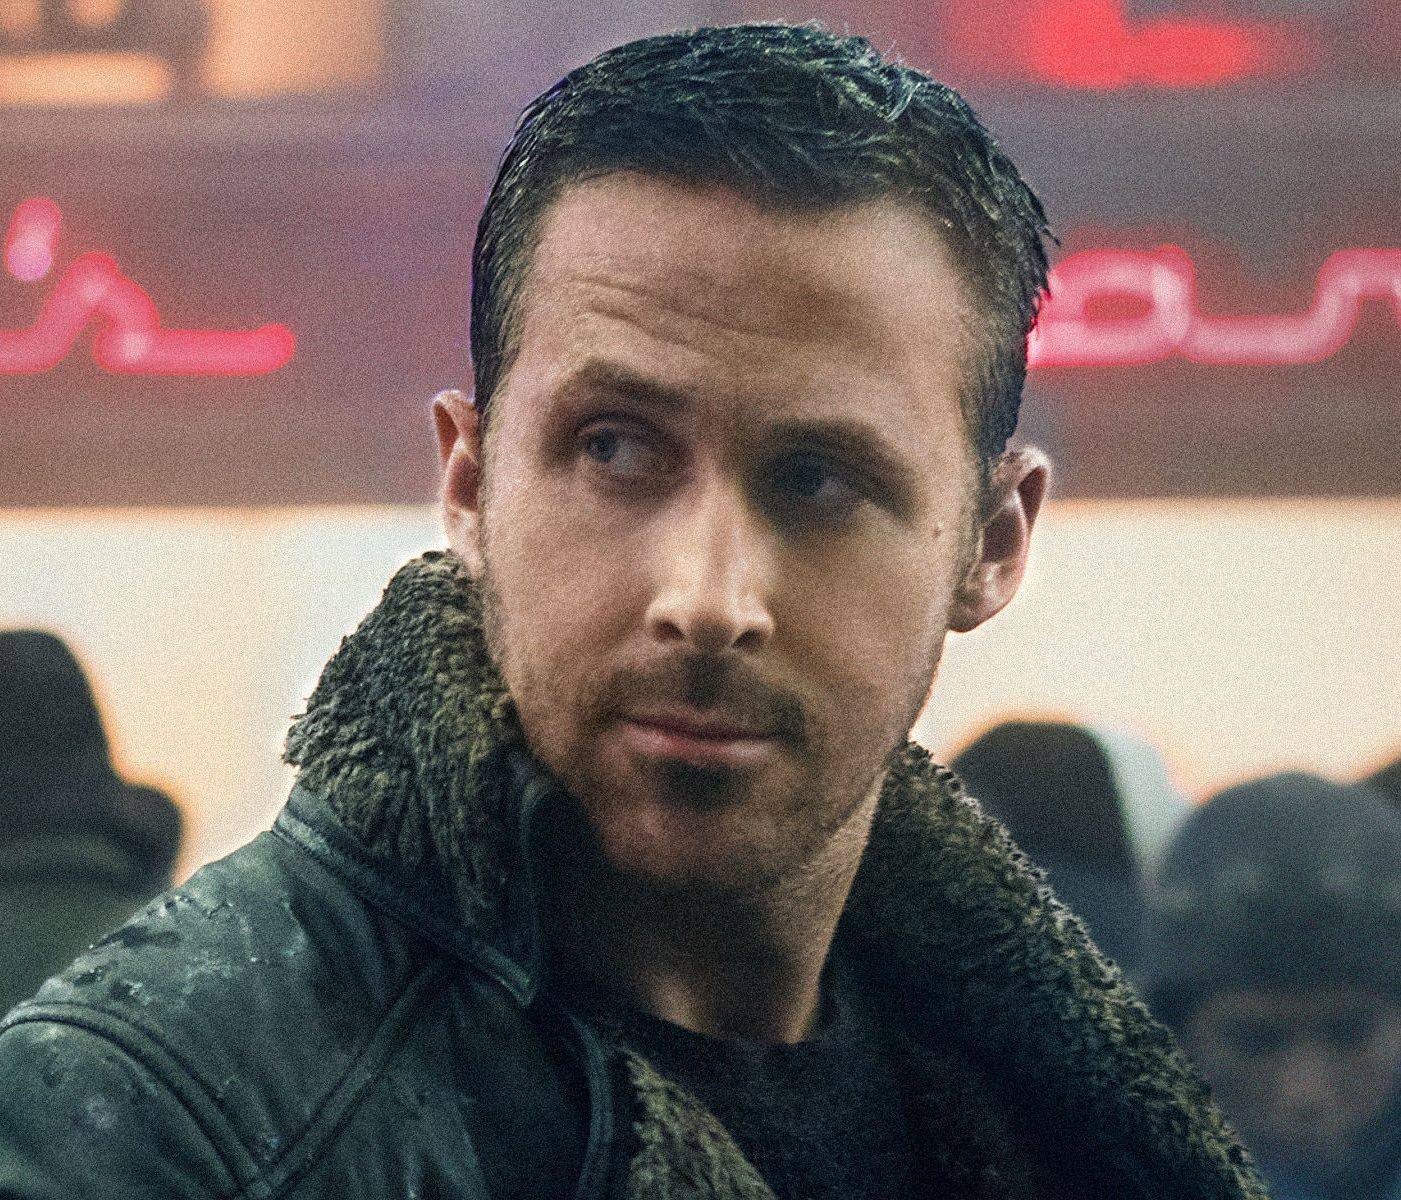 Salon Collage Hair And Beauty Salon The Ryan Gosling Blade Runner 2049 Haircut